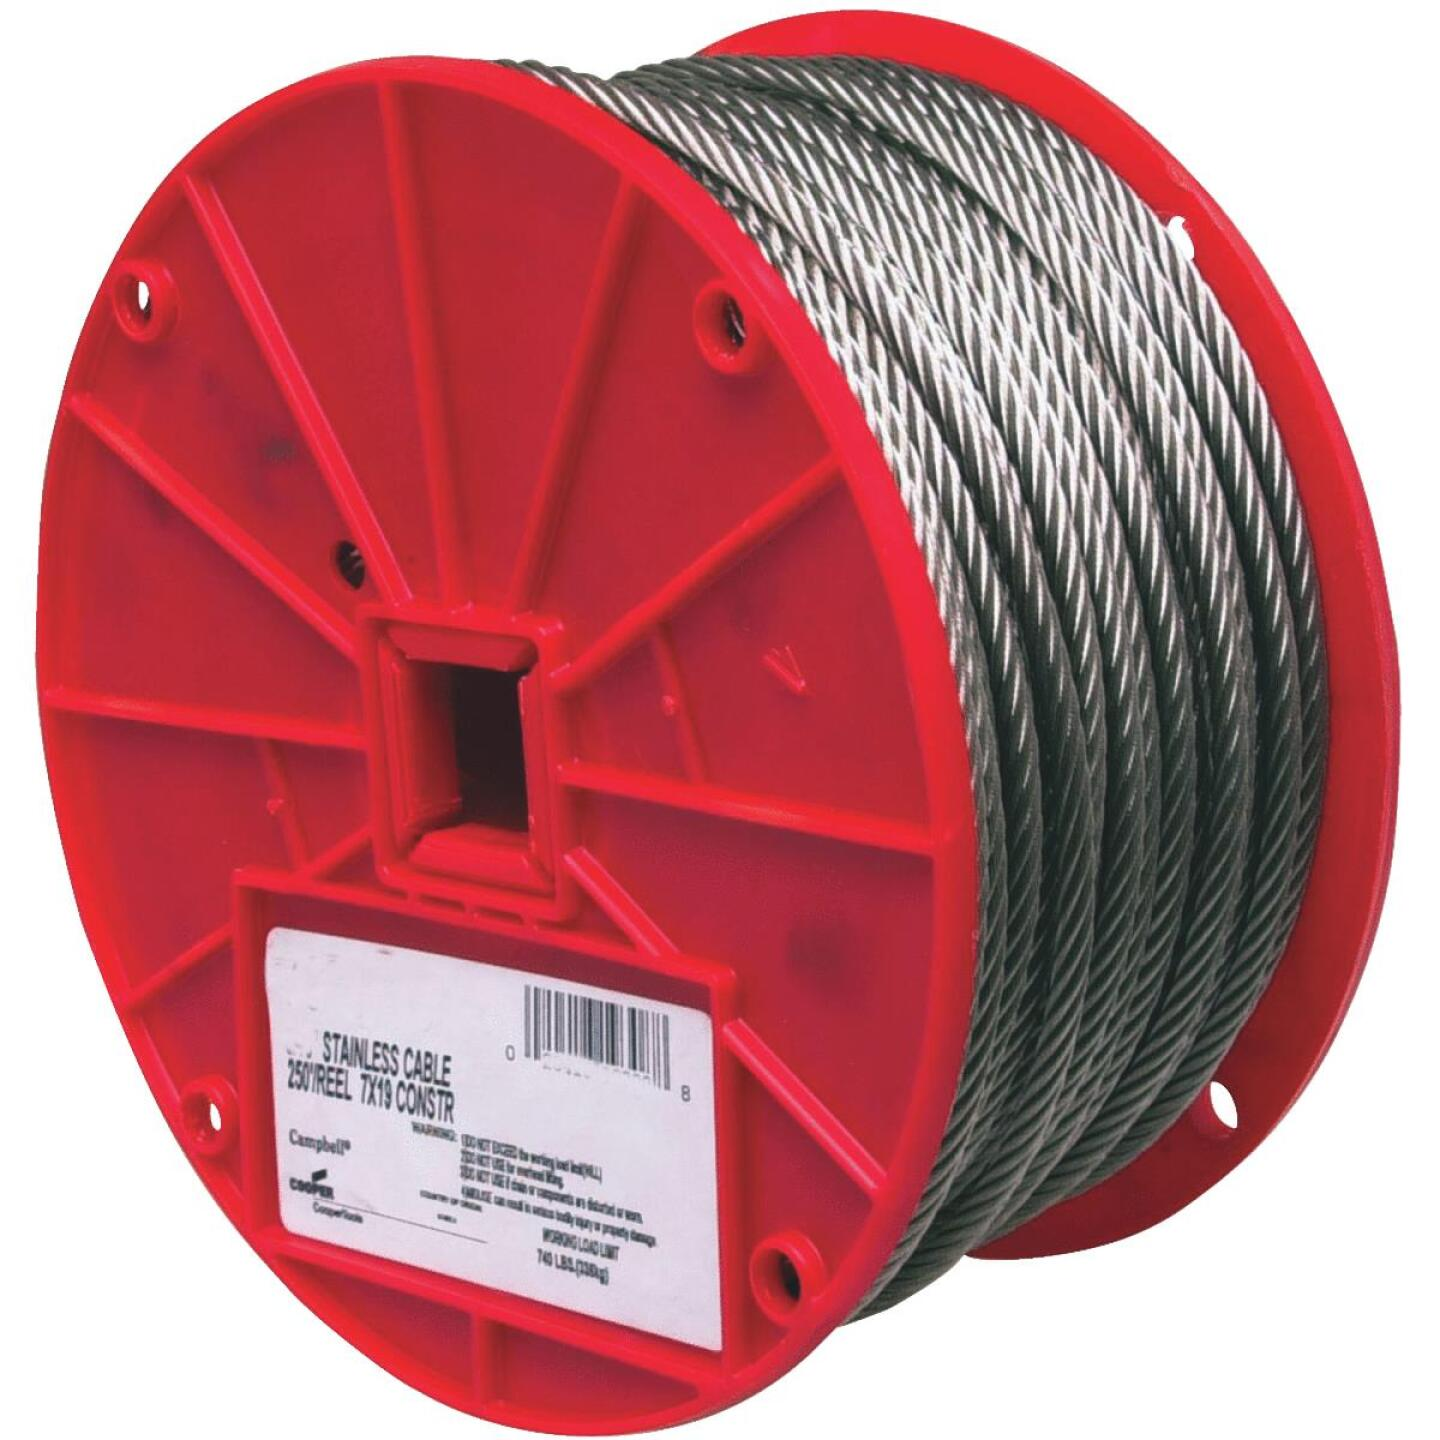 Campbell 5/16 In. x 200 Ft. Stainless Steel Wire Cable Image 1